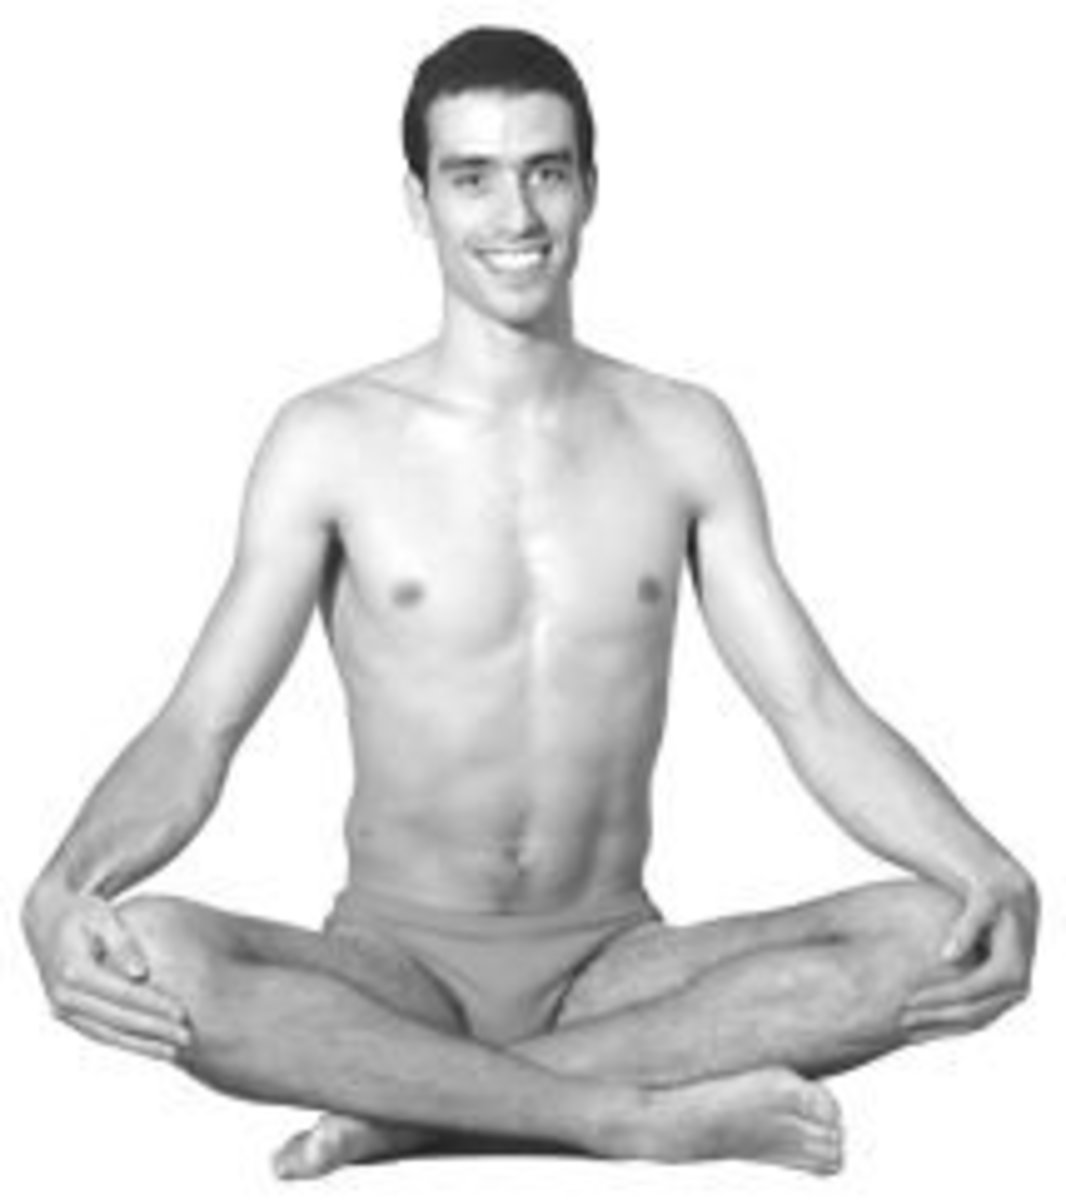 Sukhasana or easy posture for sitting cross legged on the floor for doing yoga, pranayama or meditation